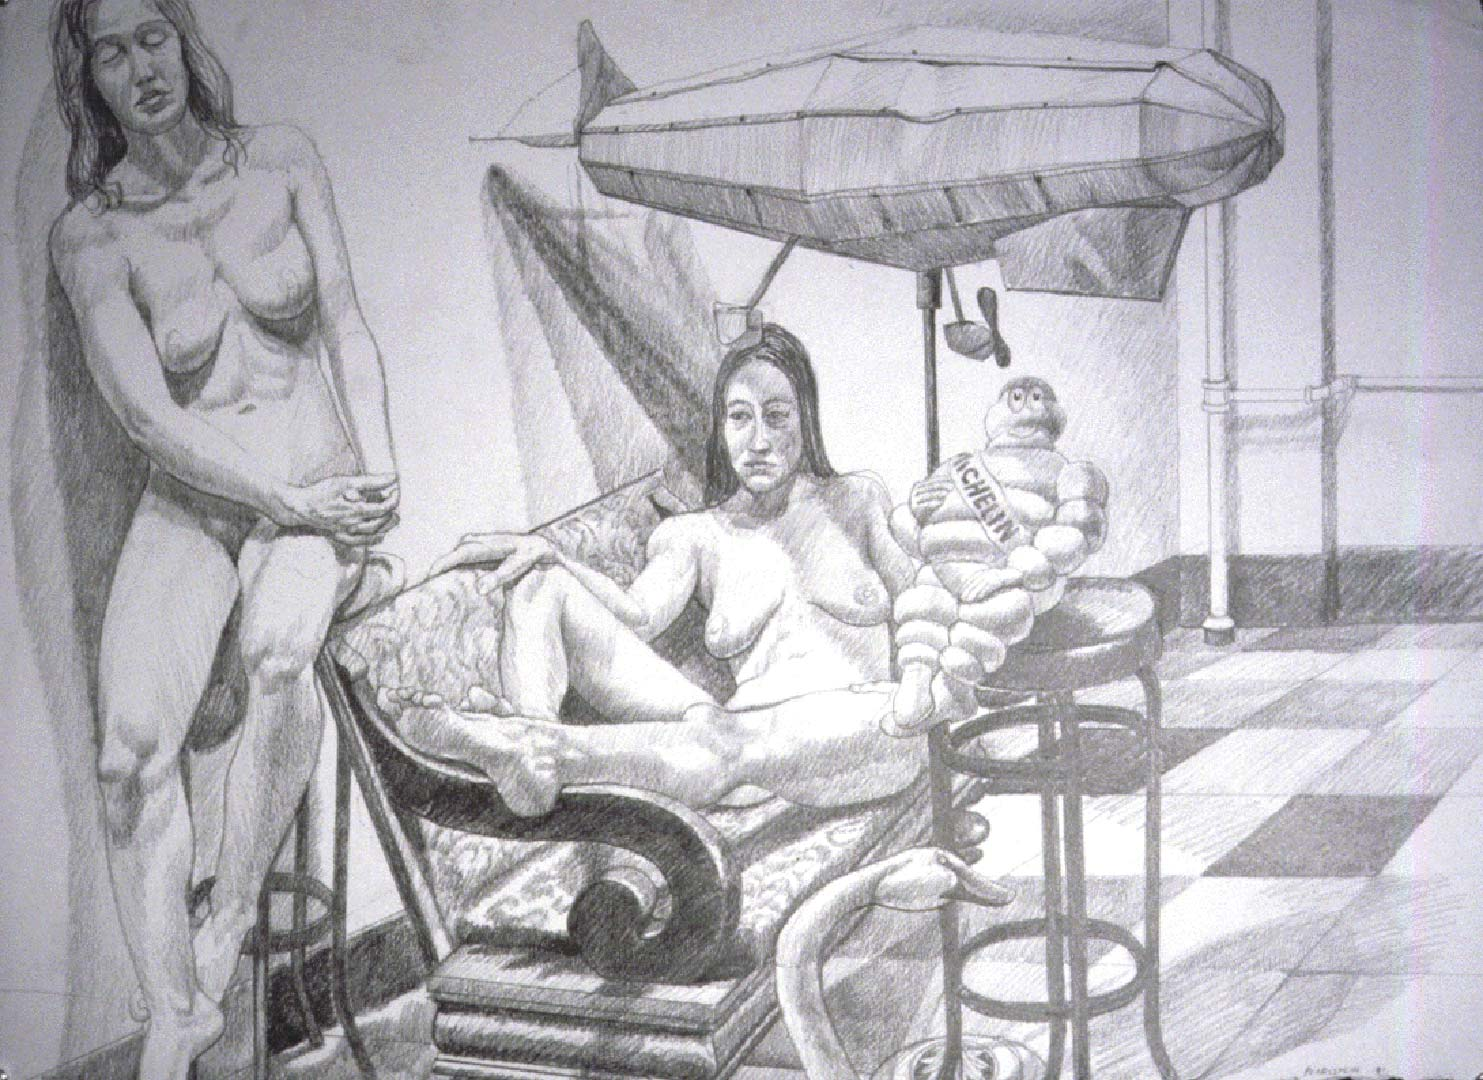 1990 Models with Blimp Pencil 30 x 40